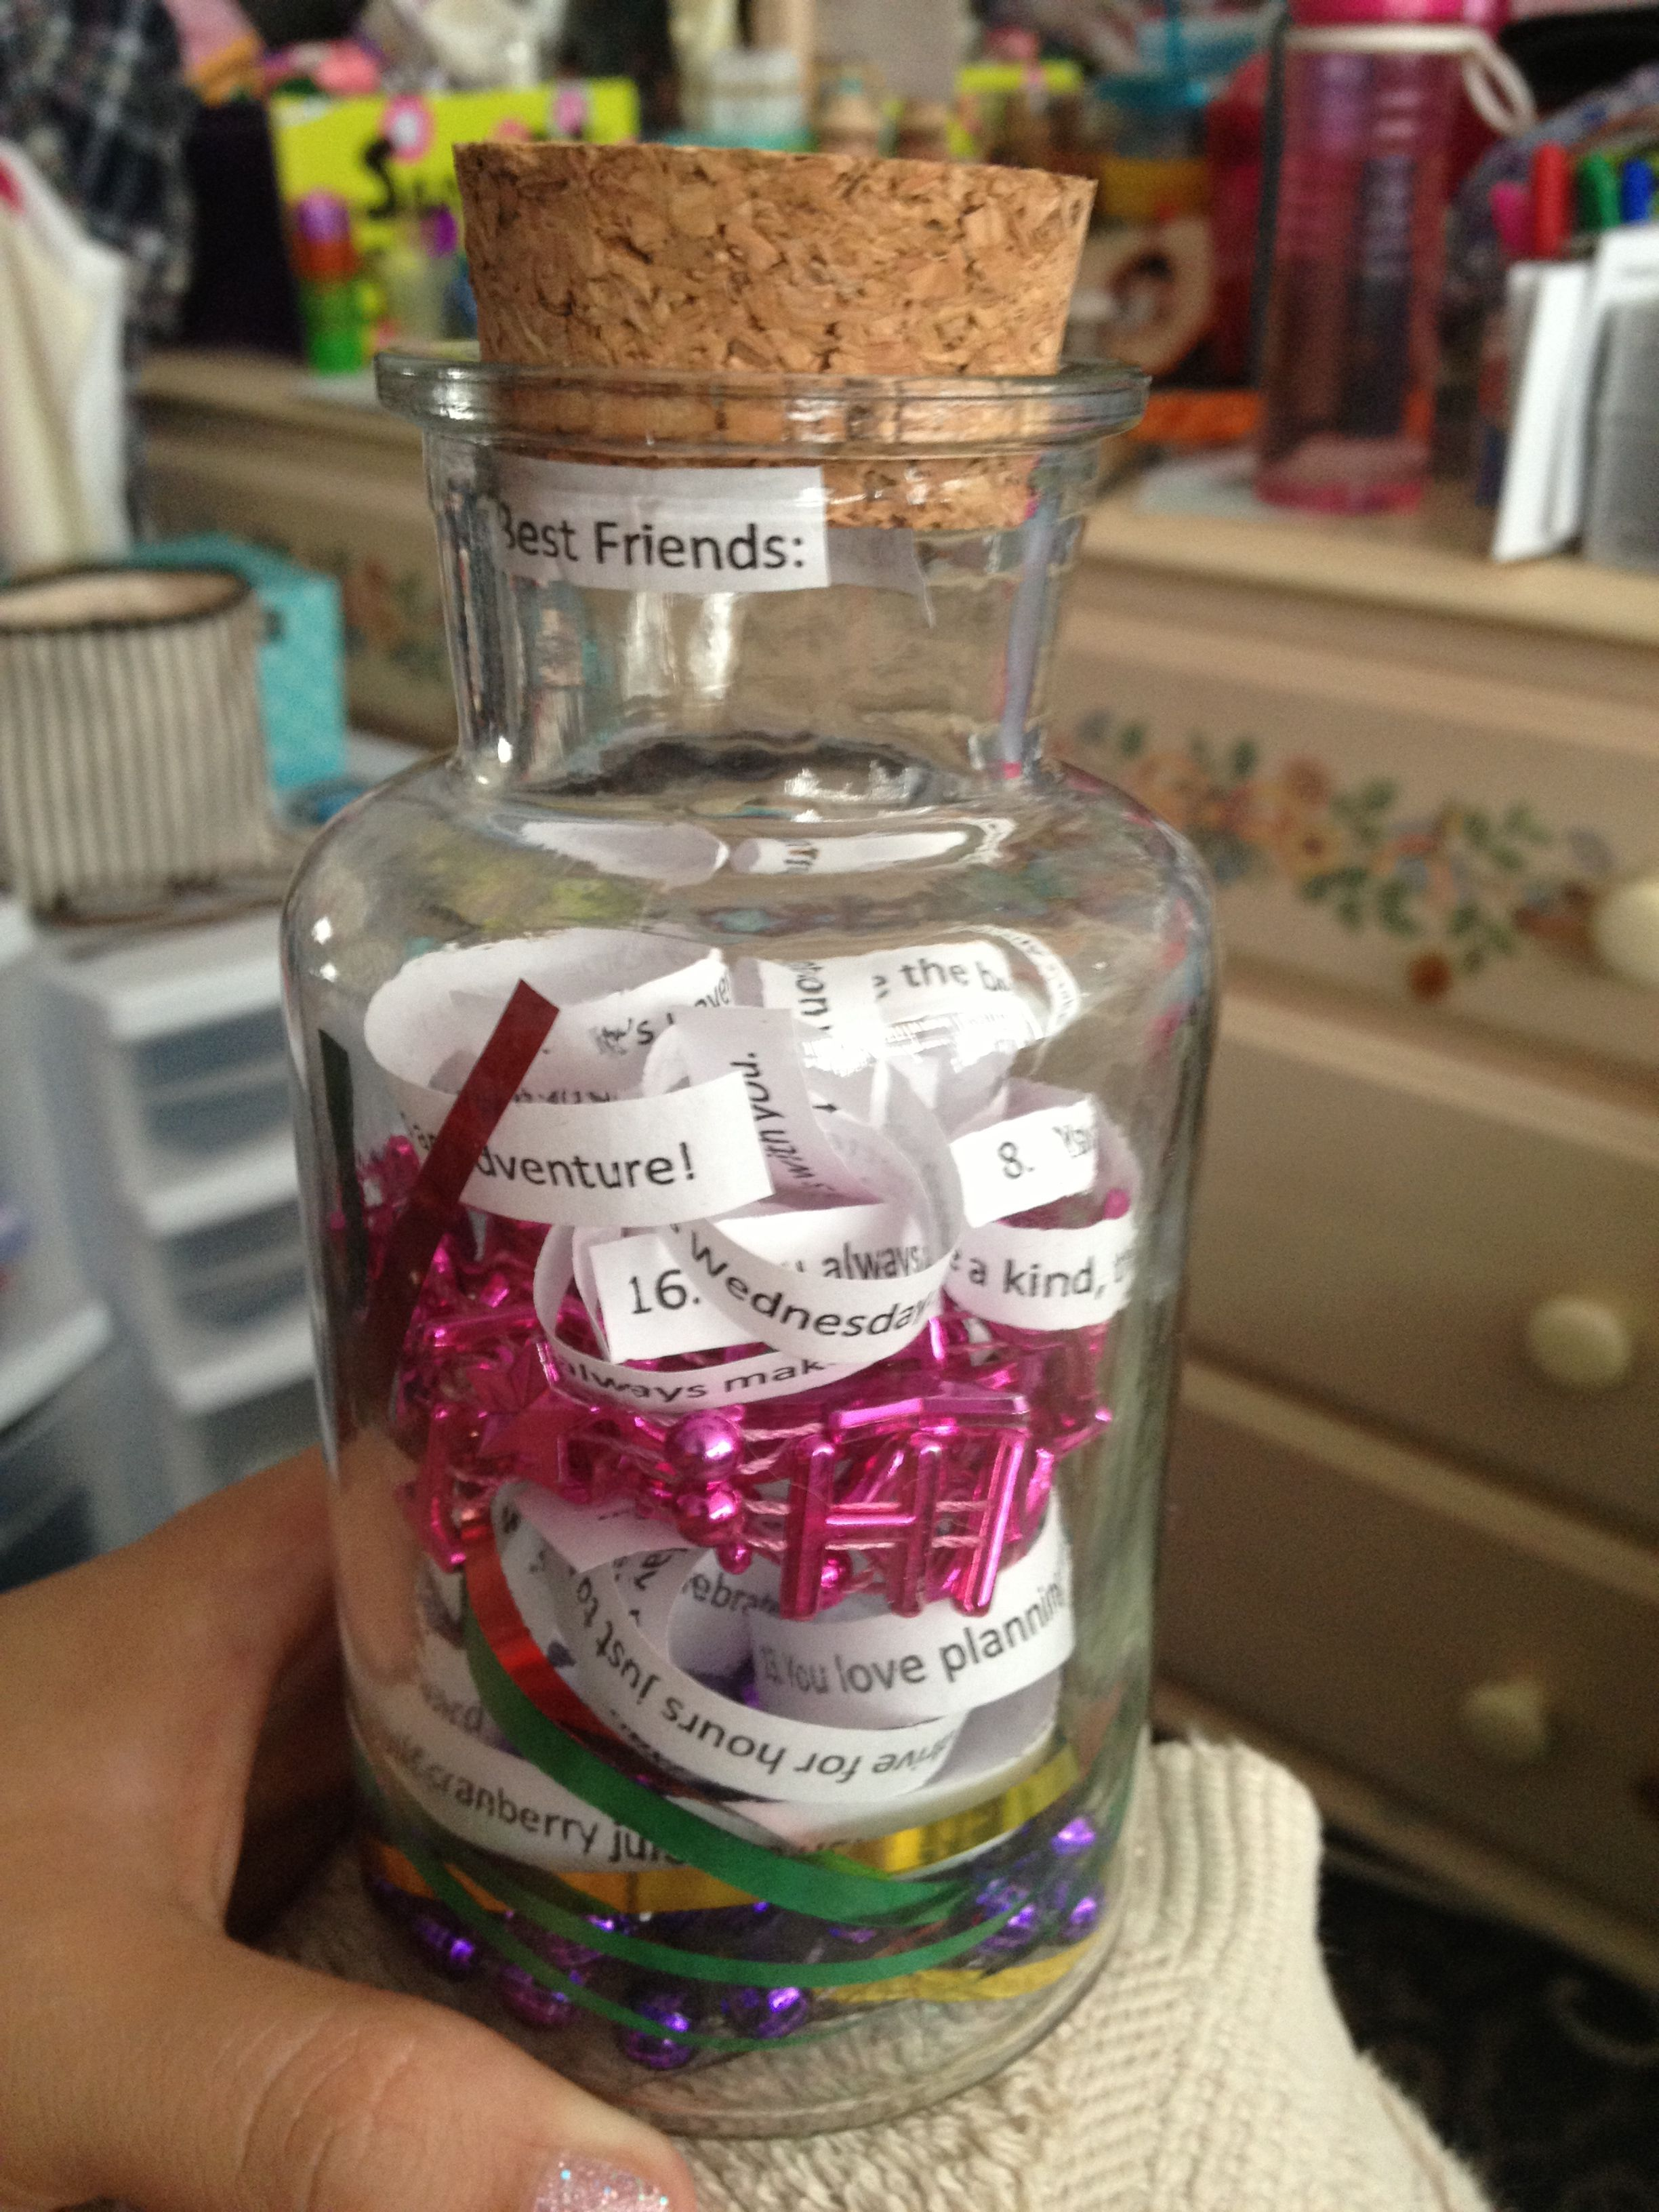 22 reasons you're my best friend in a corked glass bottle for a 22nd